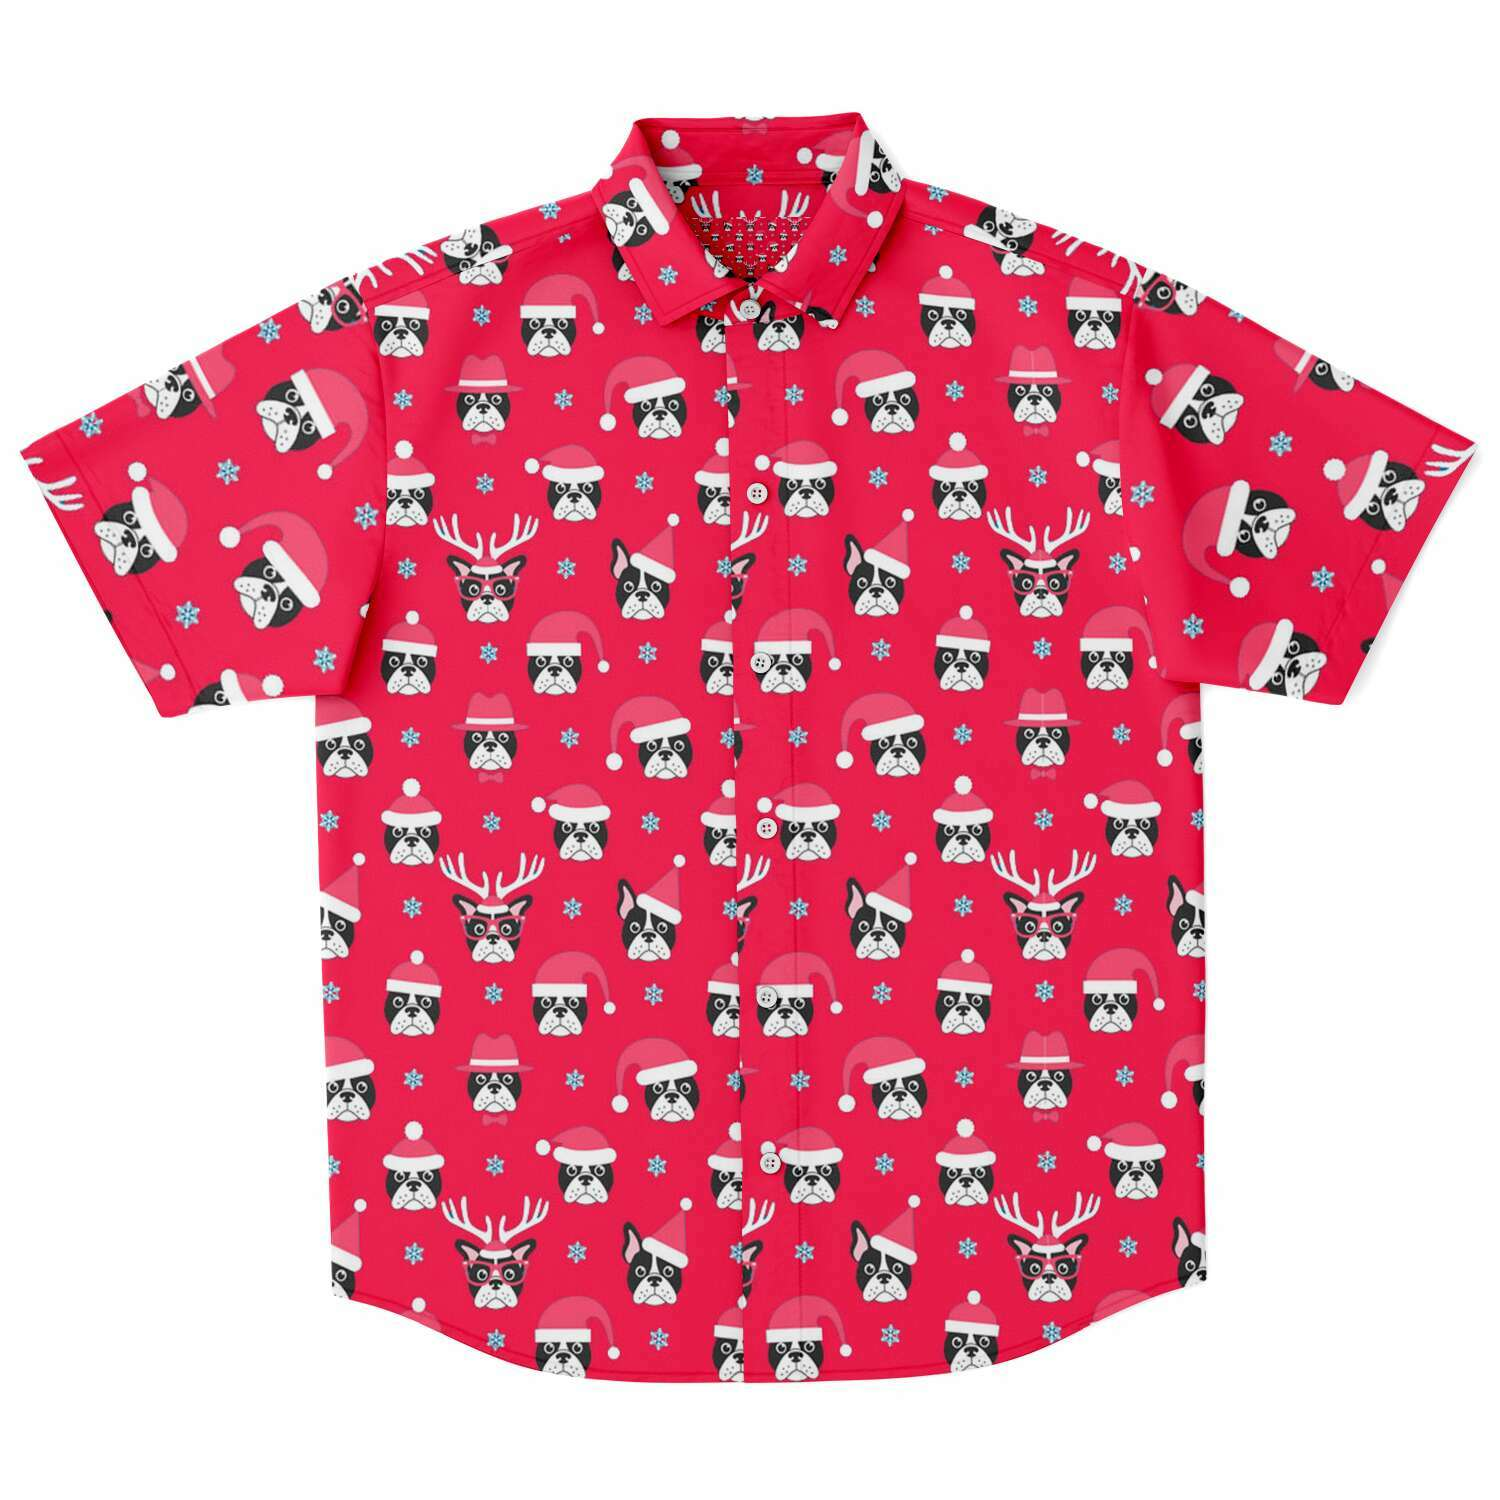 Lilo - Sleeve Button Down Shirt - Frenchie Bulldog Shop